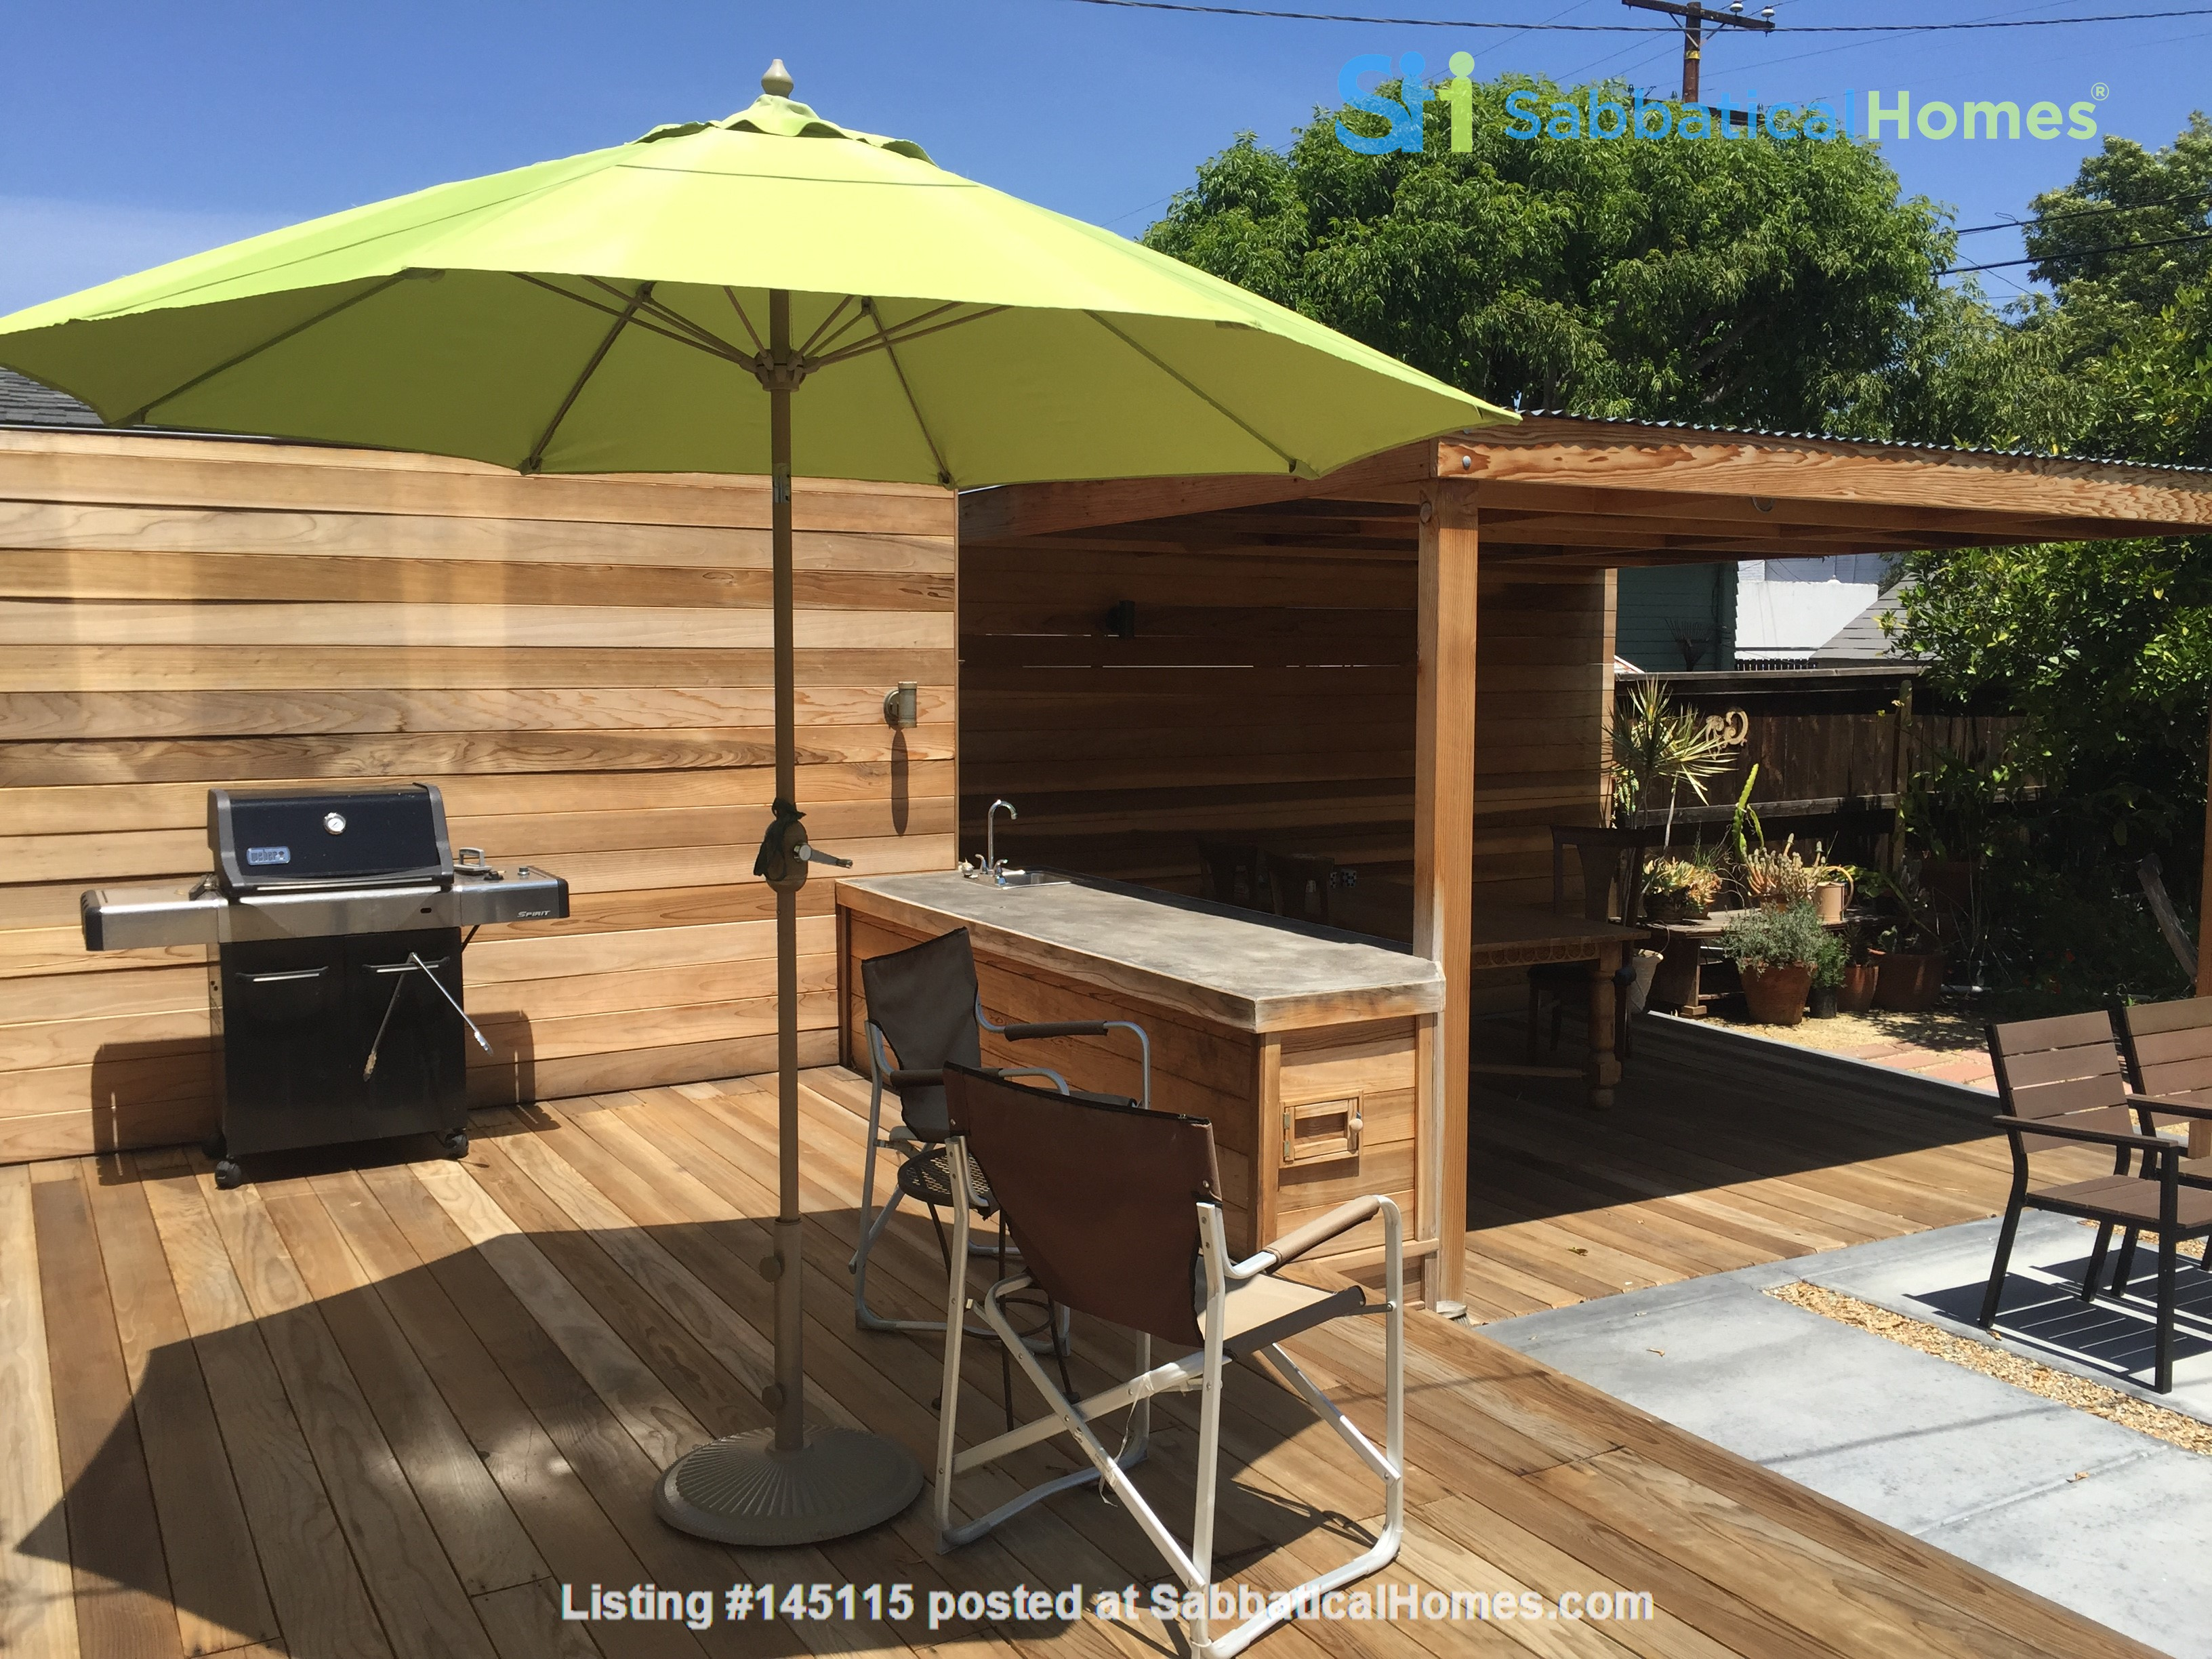 Quiet home for academic or visiting artist Home Rental in San Diego, California, United States 6